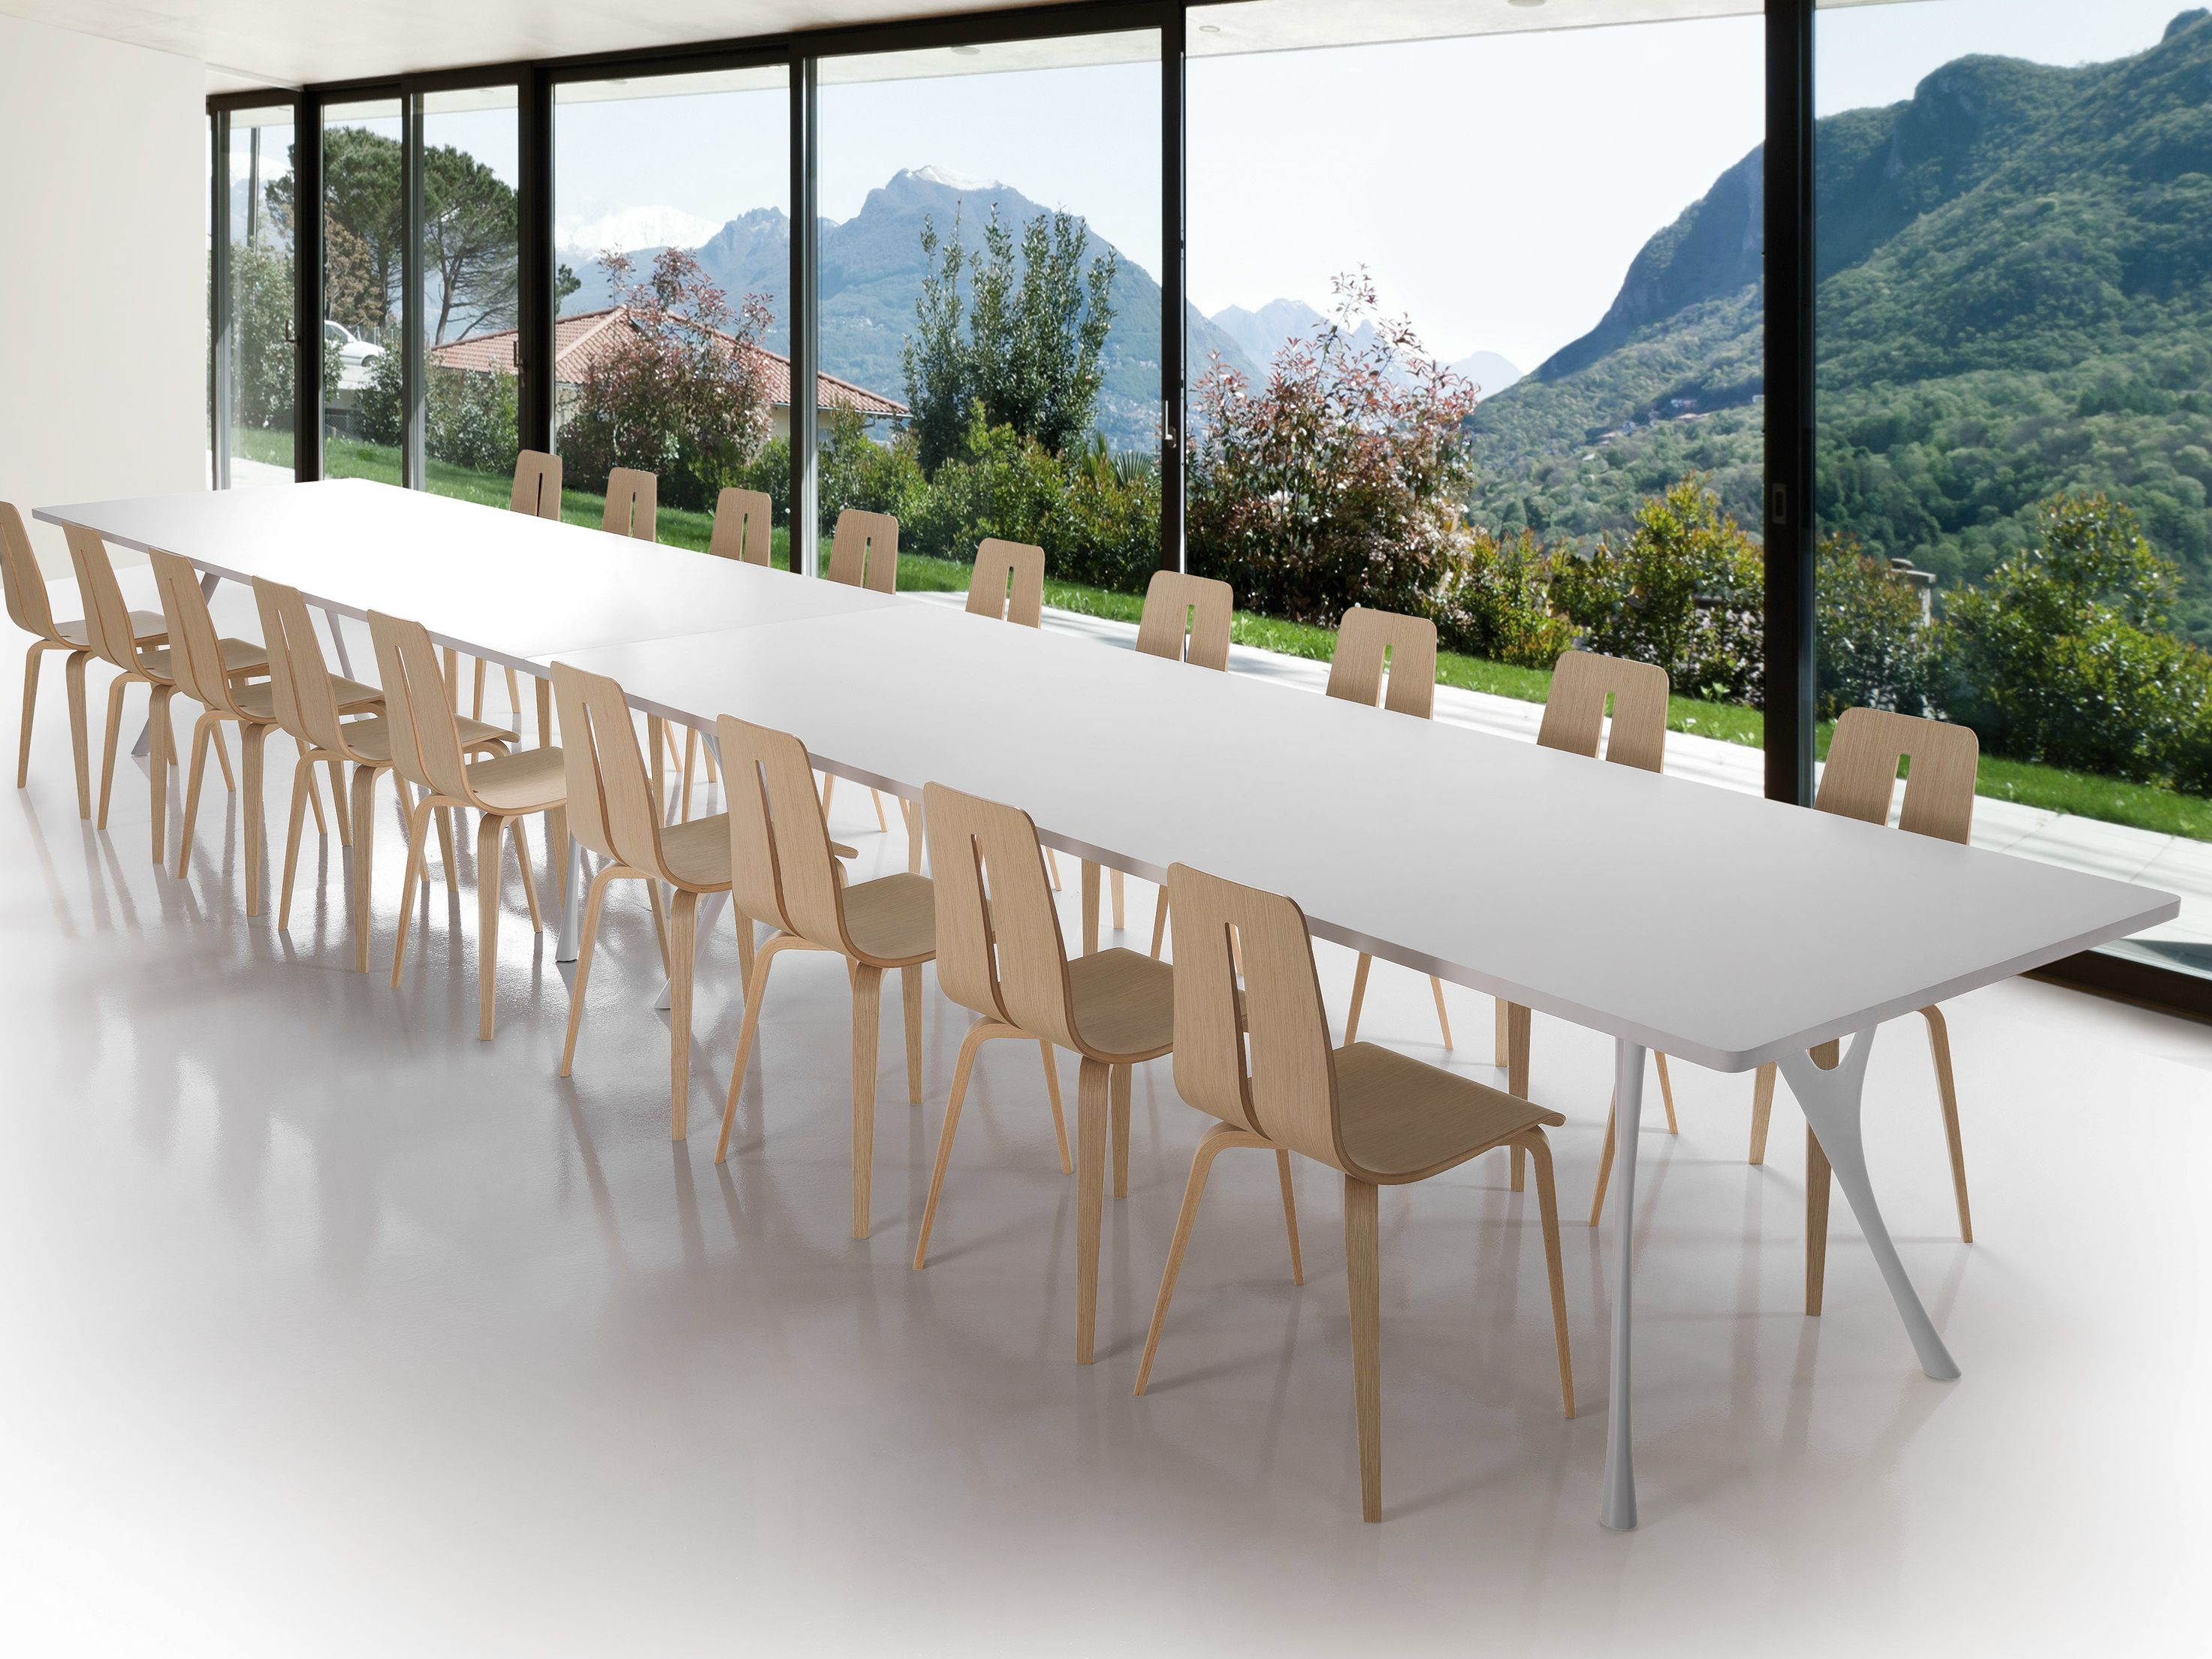 Rectangular table PEGASO SOLID by Caimi Brevetti design Alessandro Angelotti, Letterio Gianni Cardile